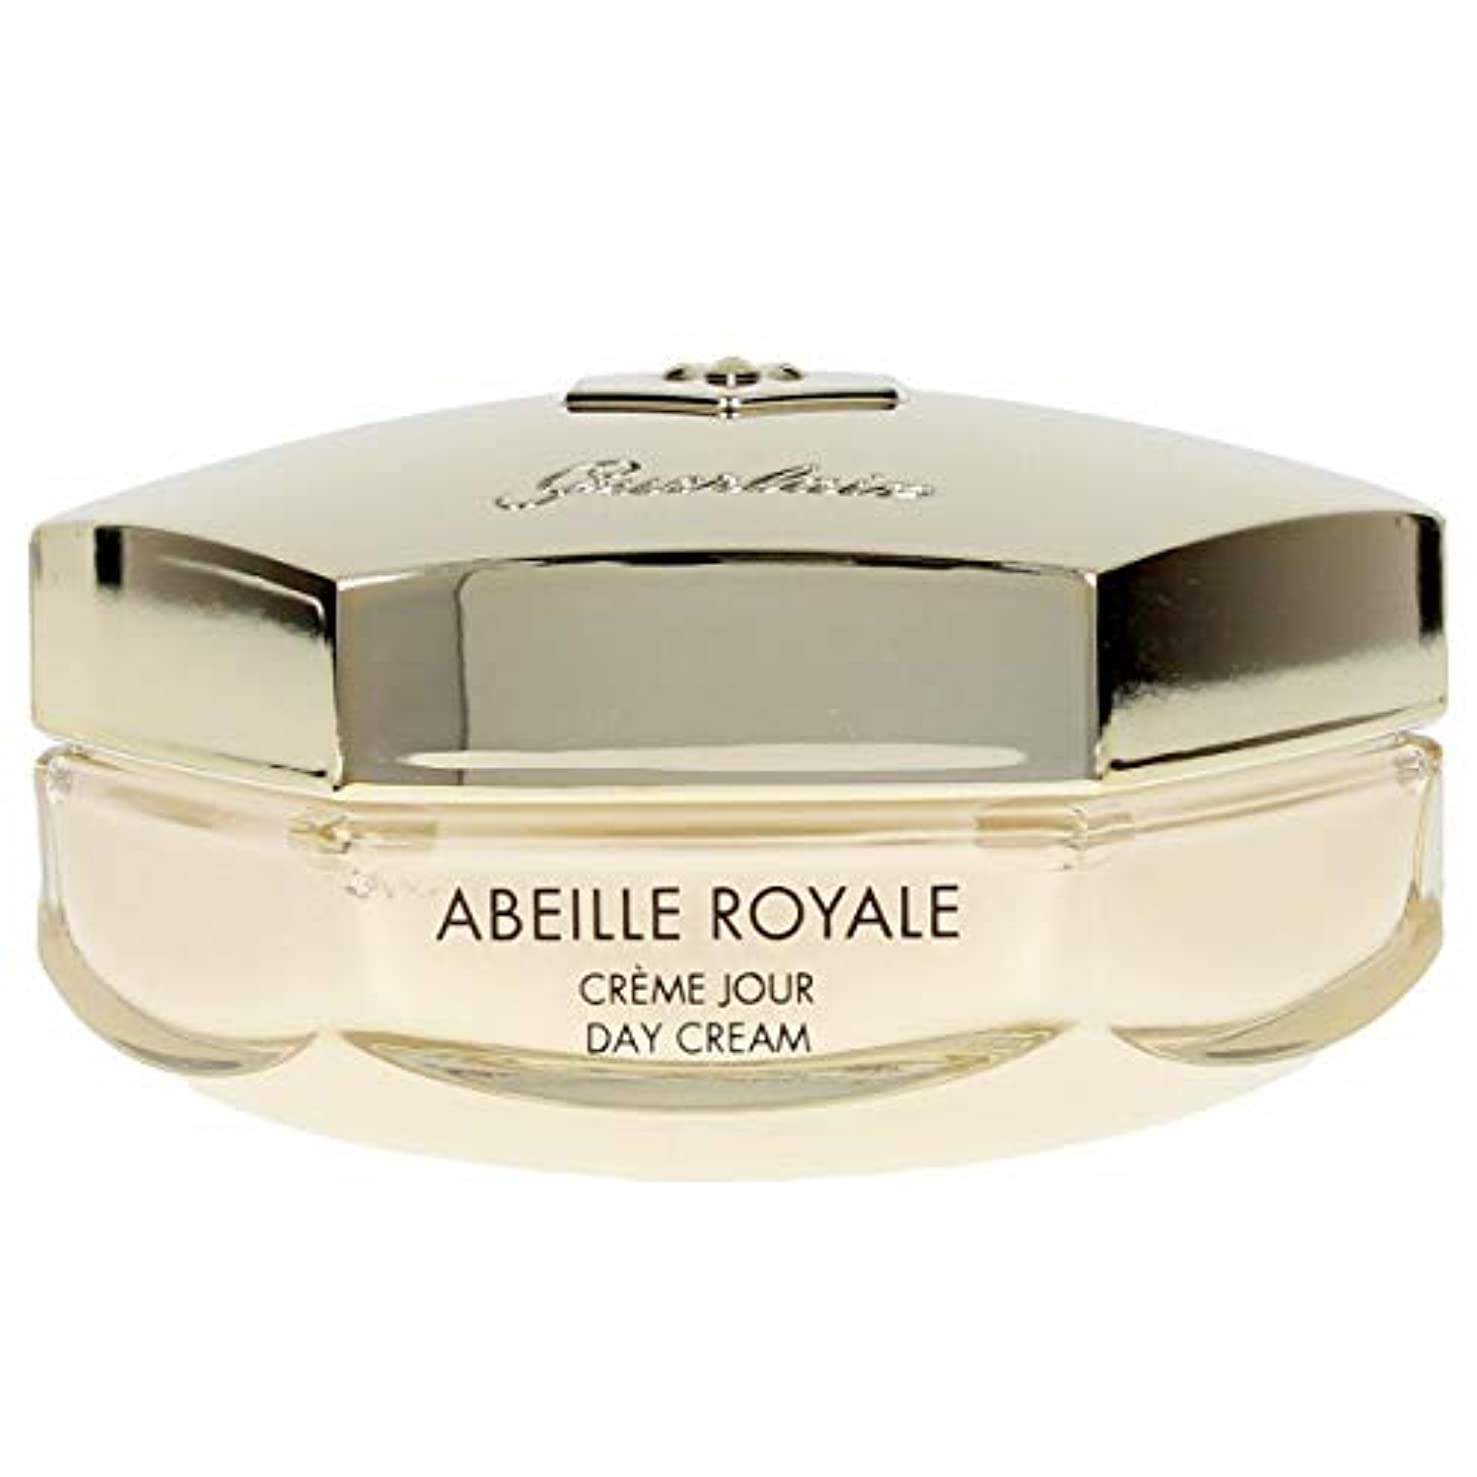 ホイール醸造所理解するゲラン Abeille Royale Day Cream - Firms, Smoothes & Illuminates 50ml/1.6oz並行輸入品